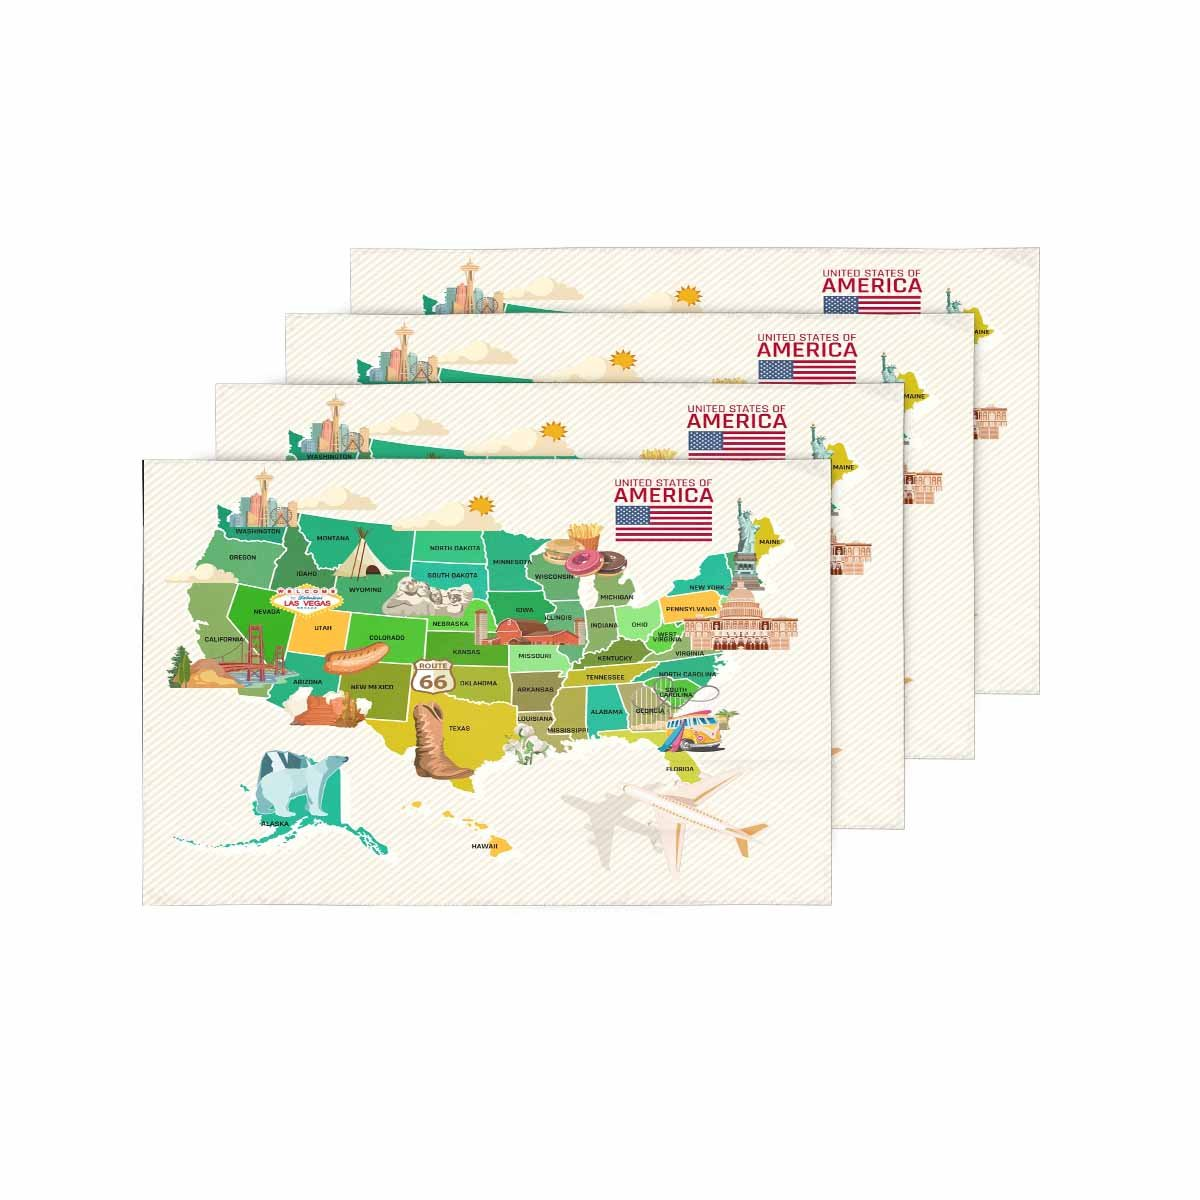 InterestPrint Welcome To USA United States of America Map Placemat Table Mats Set of 4, Travel Theme USA Map Heat Resistant Place Mat for Dining Table Restaurant Home Kitchen Decor 12''x18''